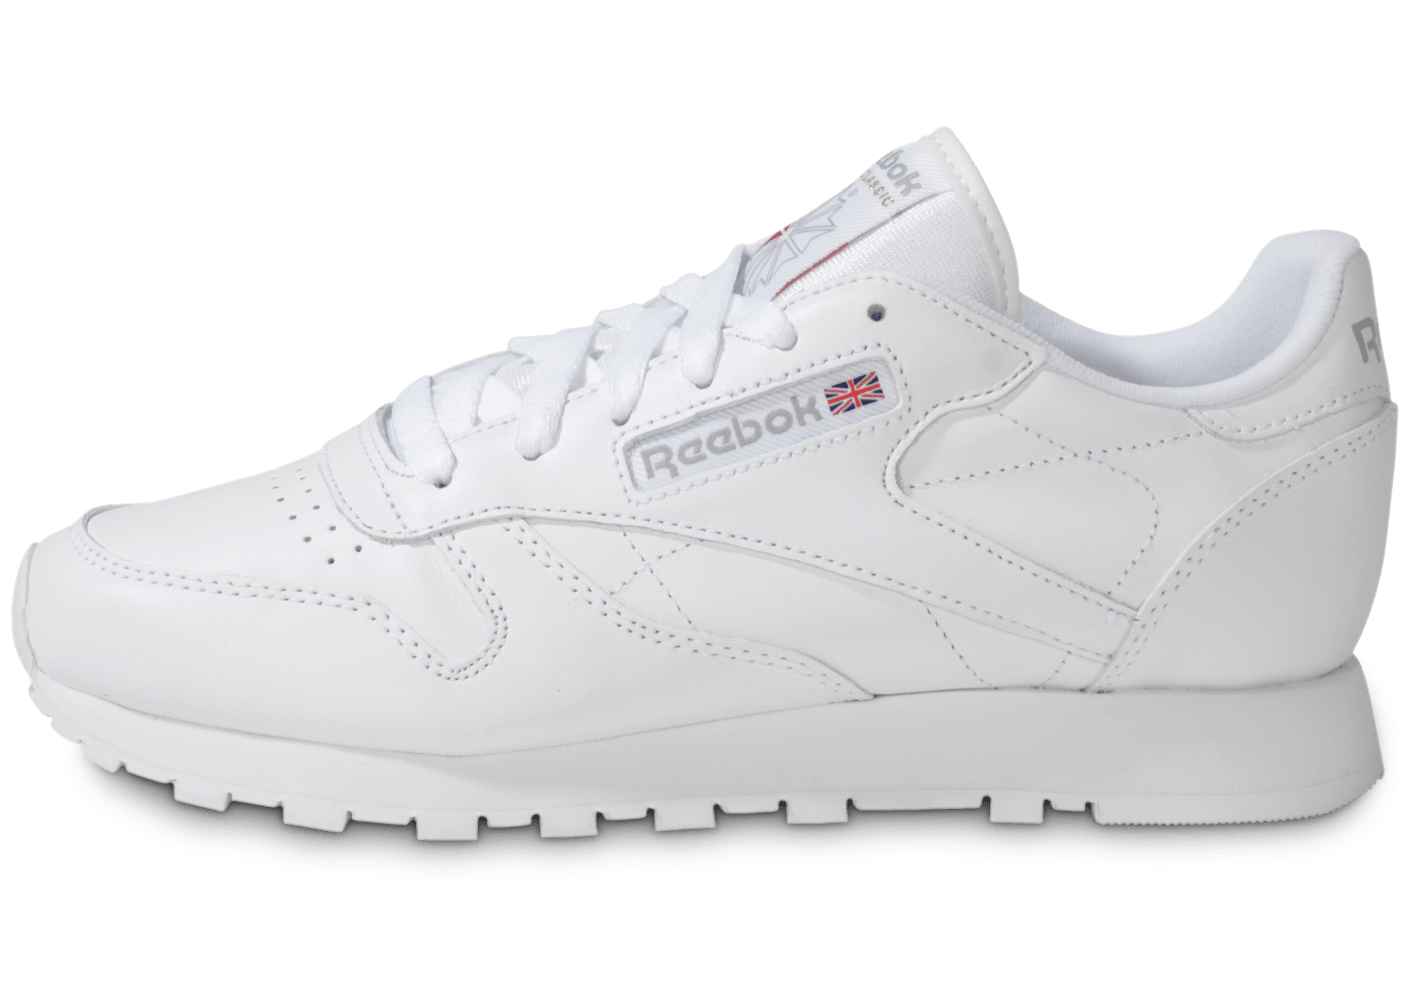 a0e928c5523e6 Reebok Classic Leather Blanche - Chaussures Chaussures - Chausport